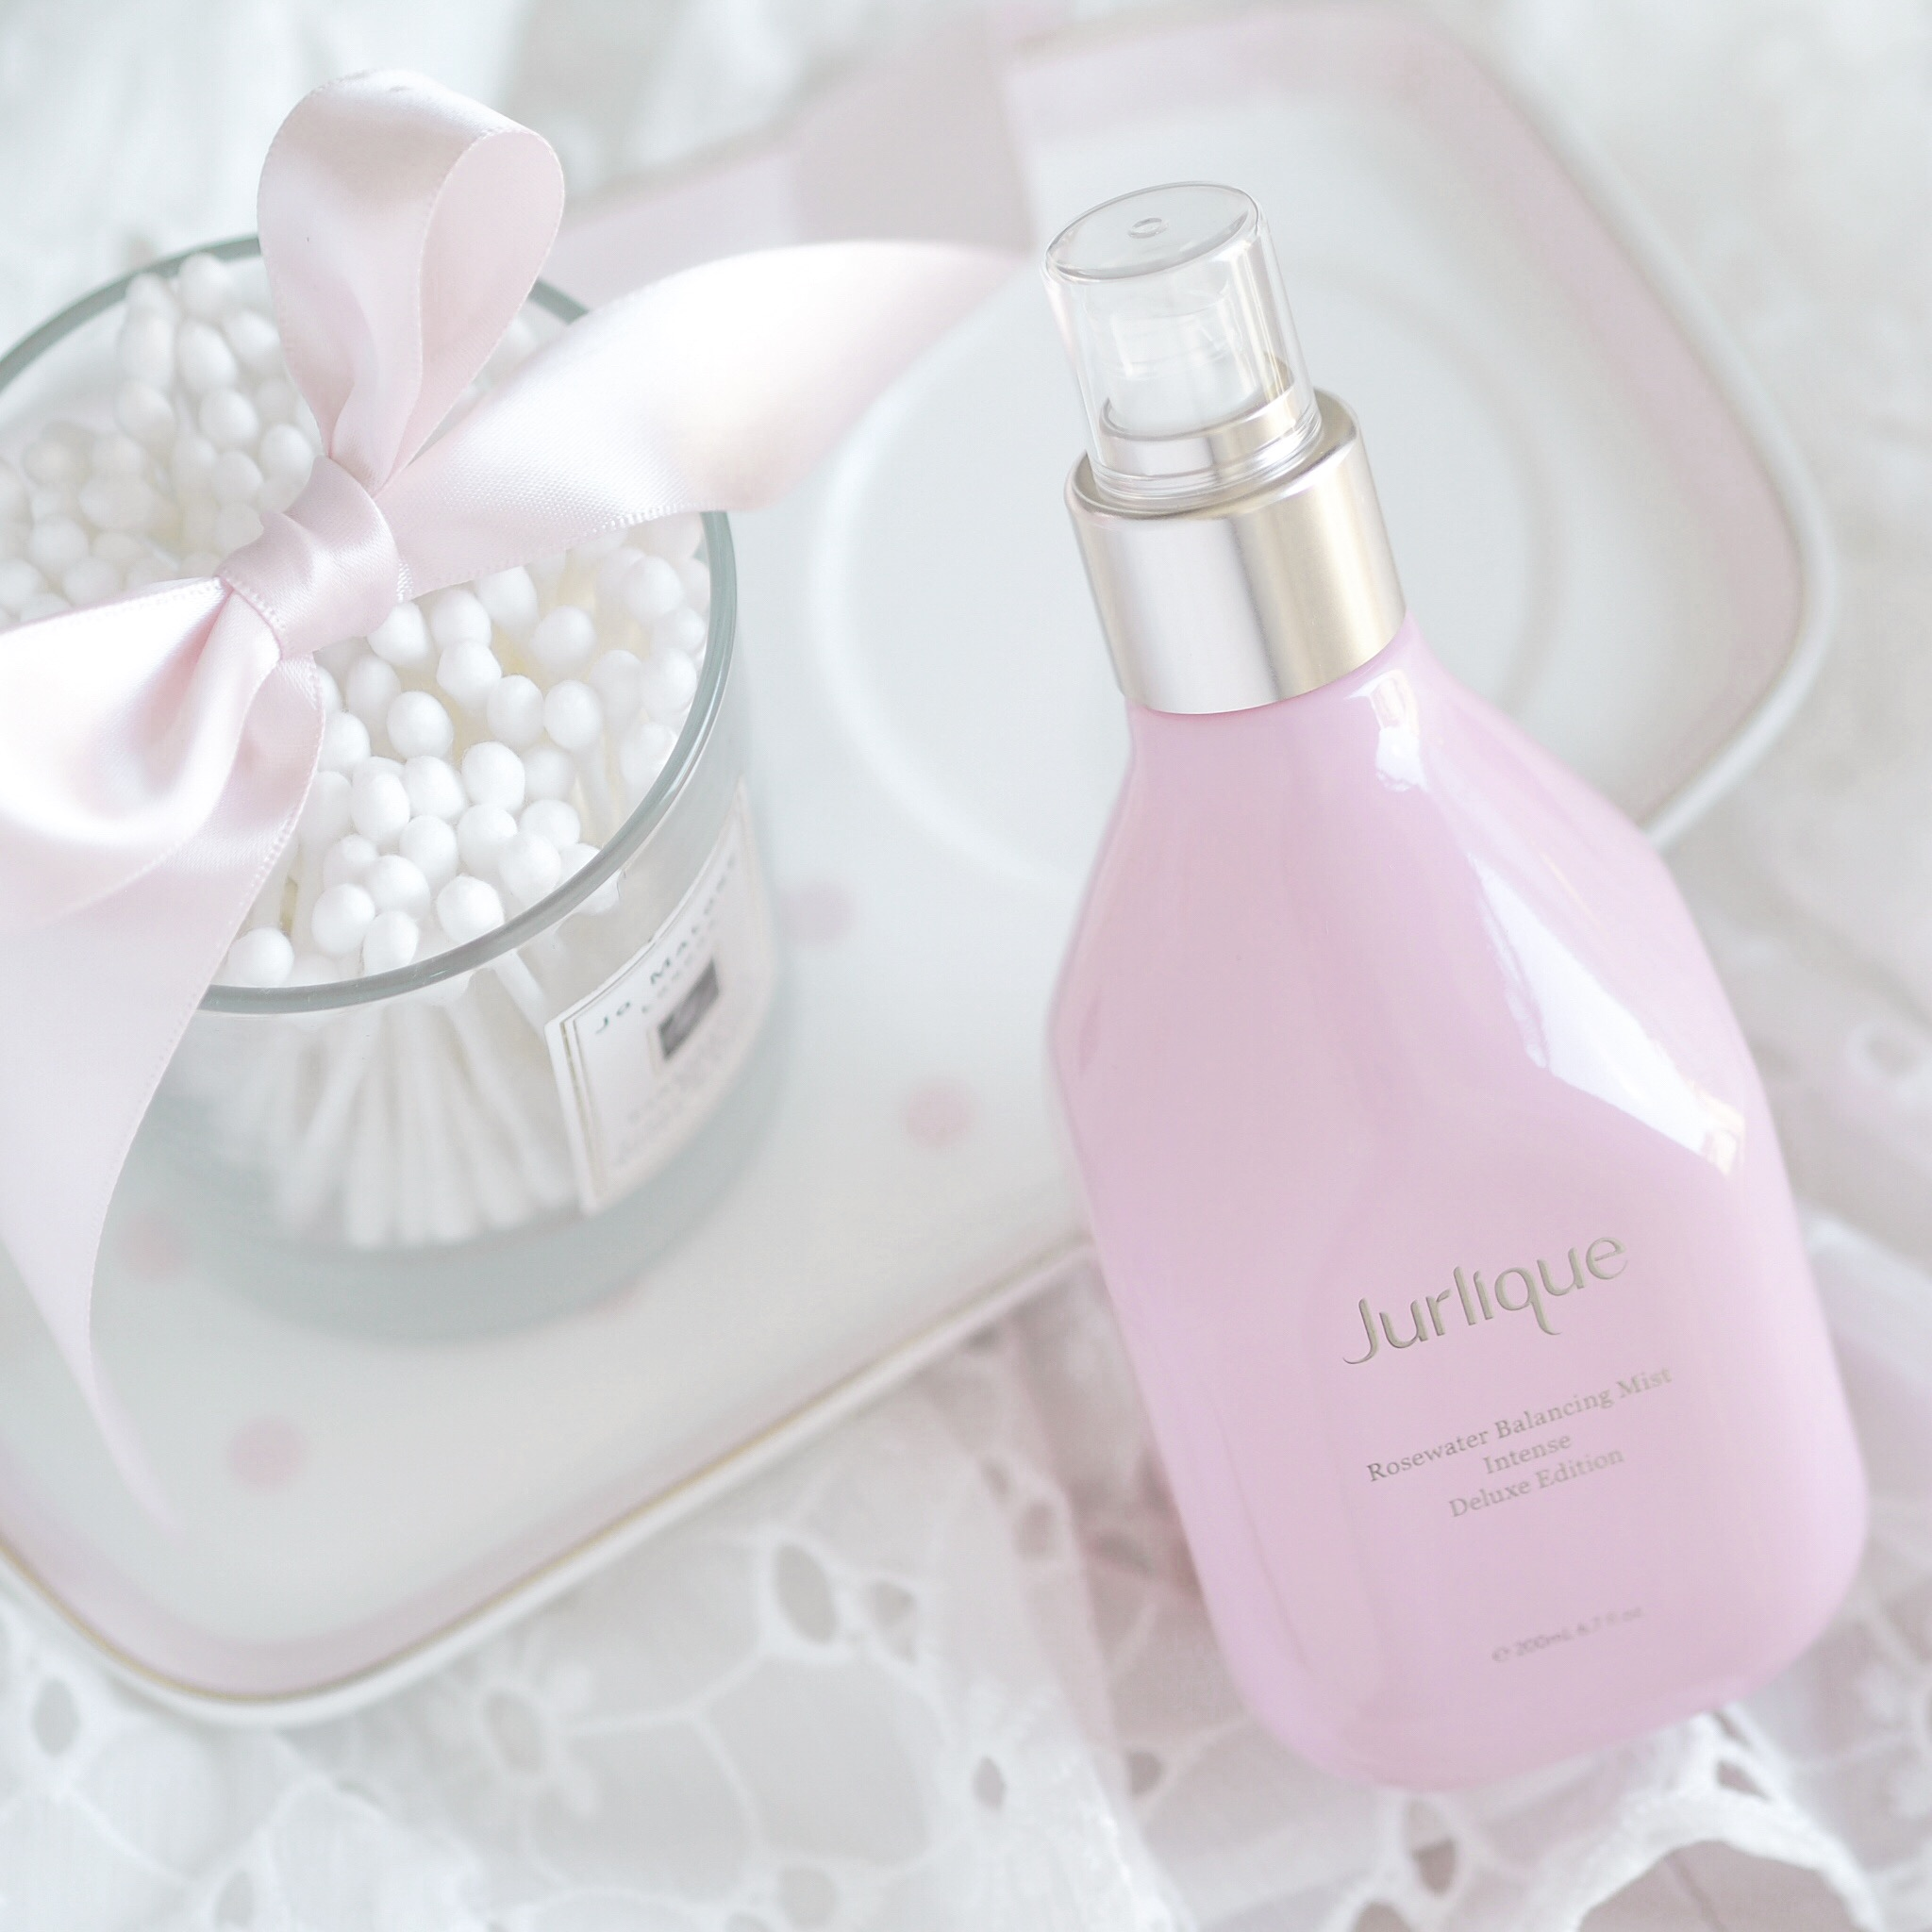 Dreamy Skincare For Angel Skin, Jurlique Rosewater Balancing Mist | Love Catherine